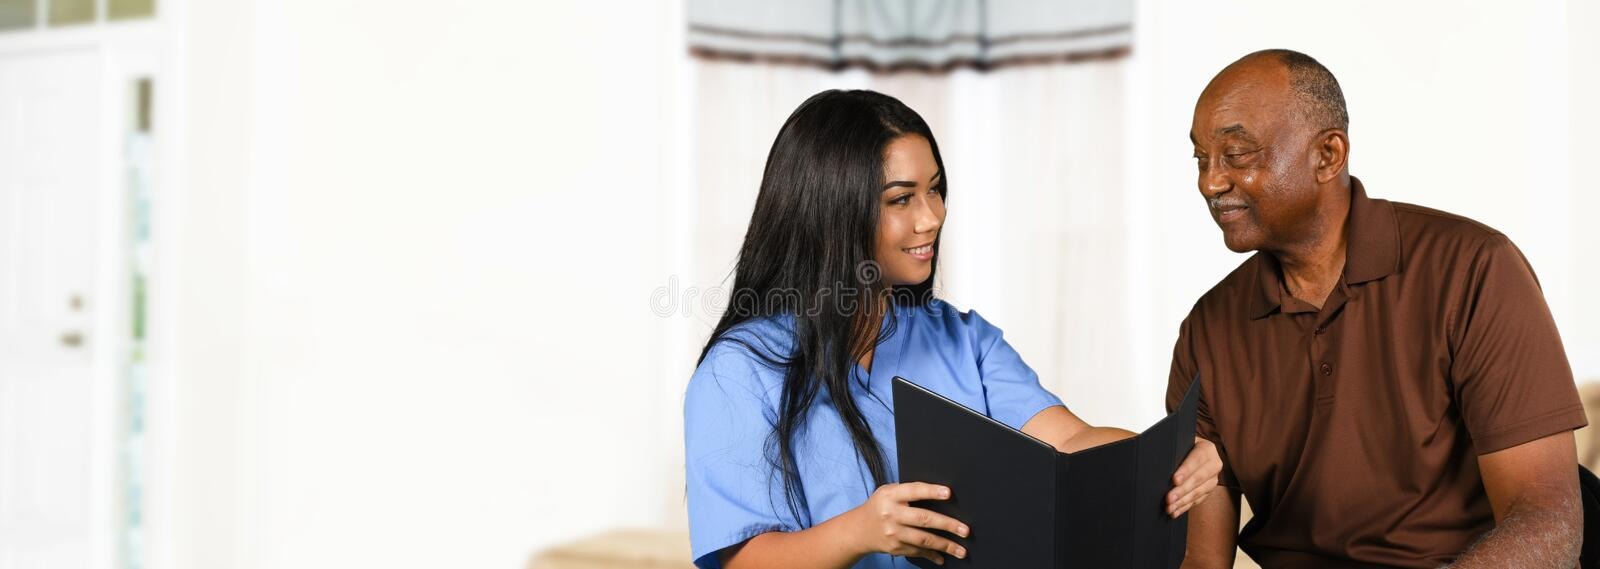 Nurse Taking Care of Senior. Nurse who is working her shift taking care of a patient stock images